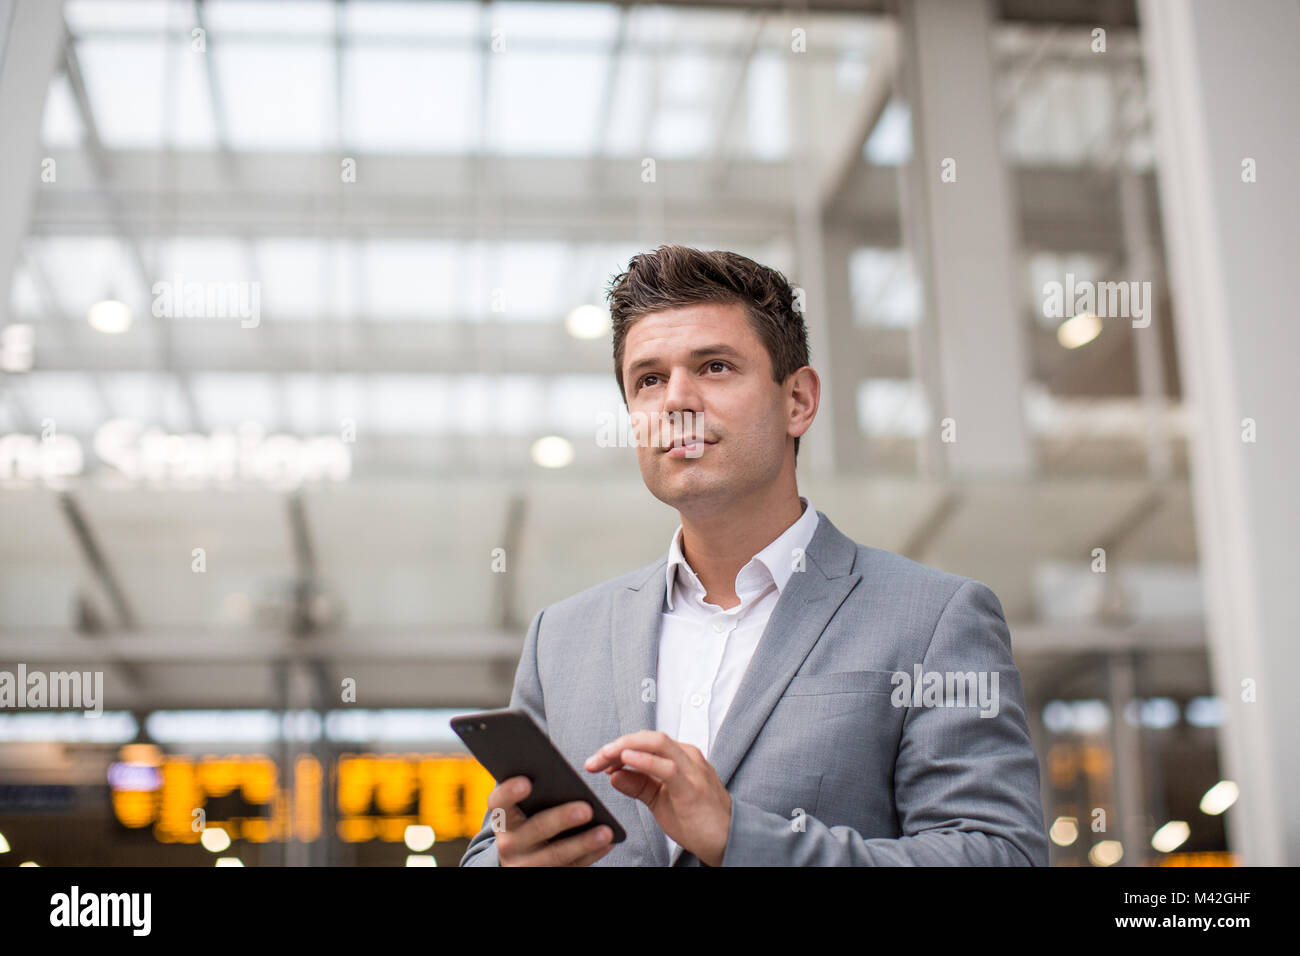 Commuter looking at train times at station holding smartphone - Stock Image